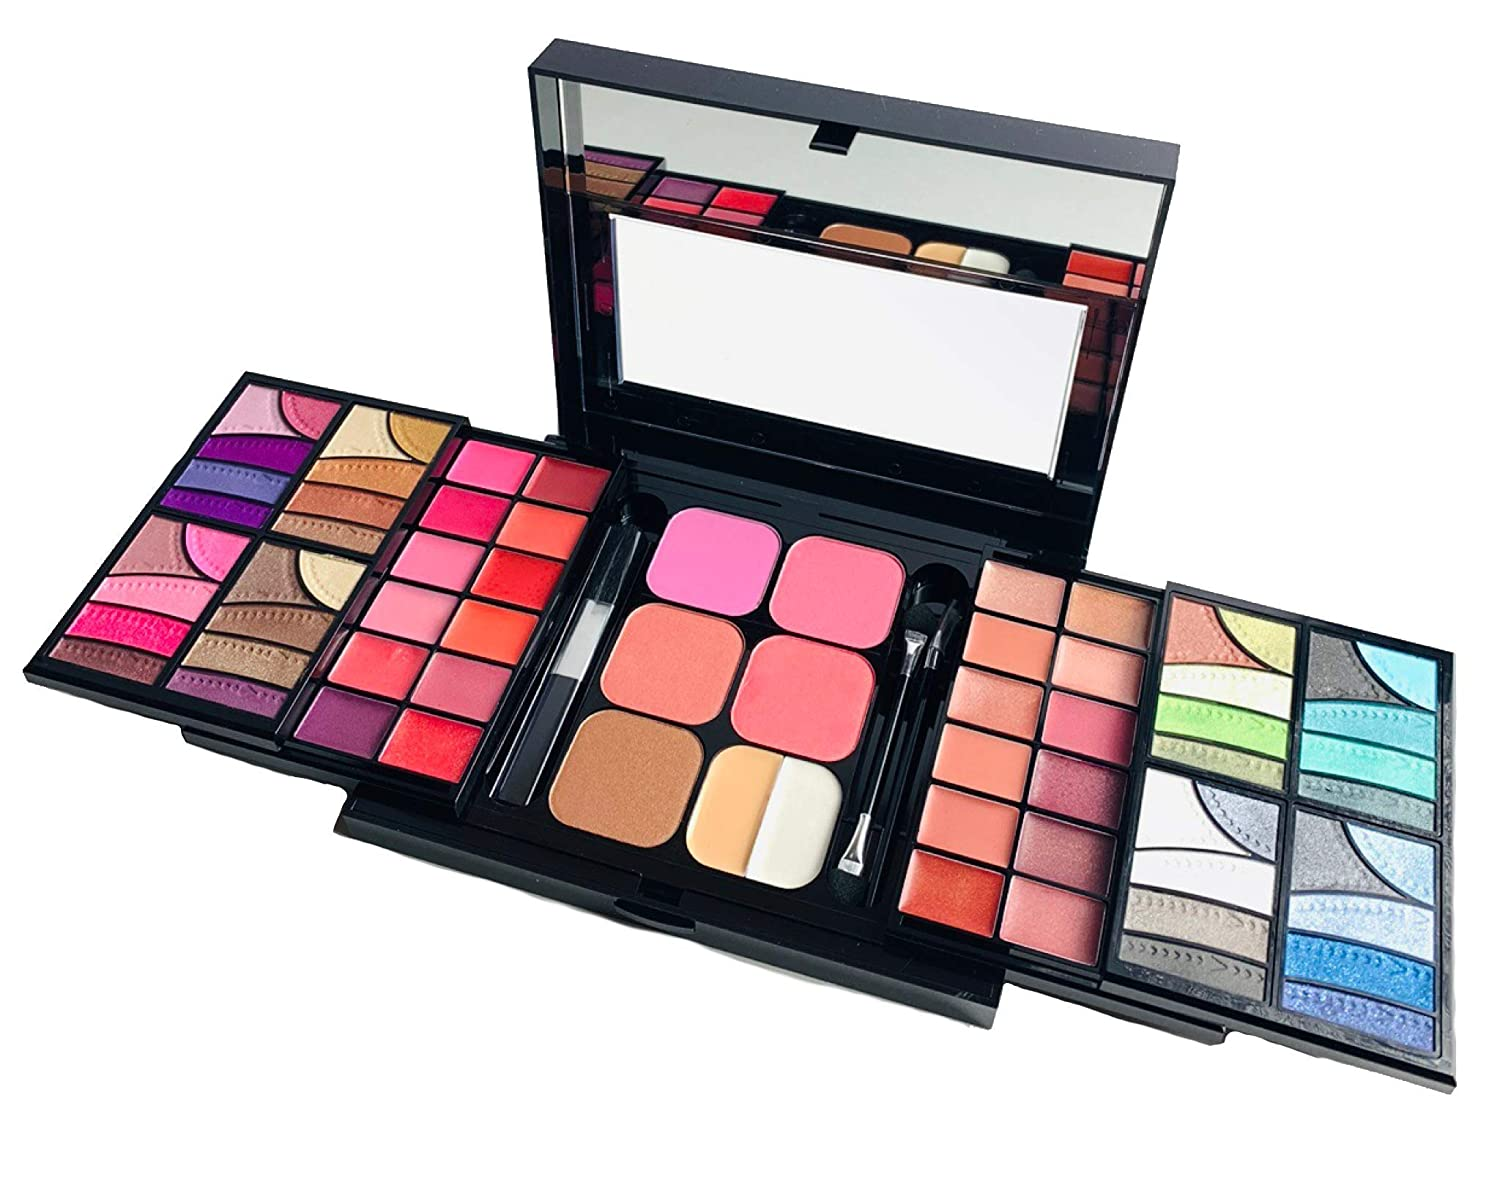 ETA Ultimate Combination Mineral Makeup Set 71 Colors 23.2 Oz by ETA Cosmetics